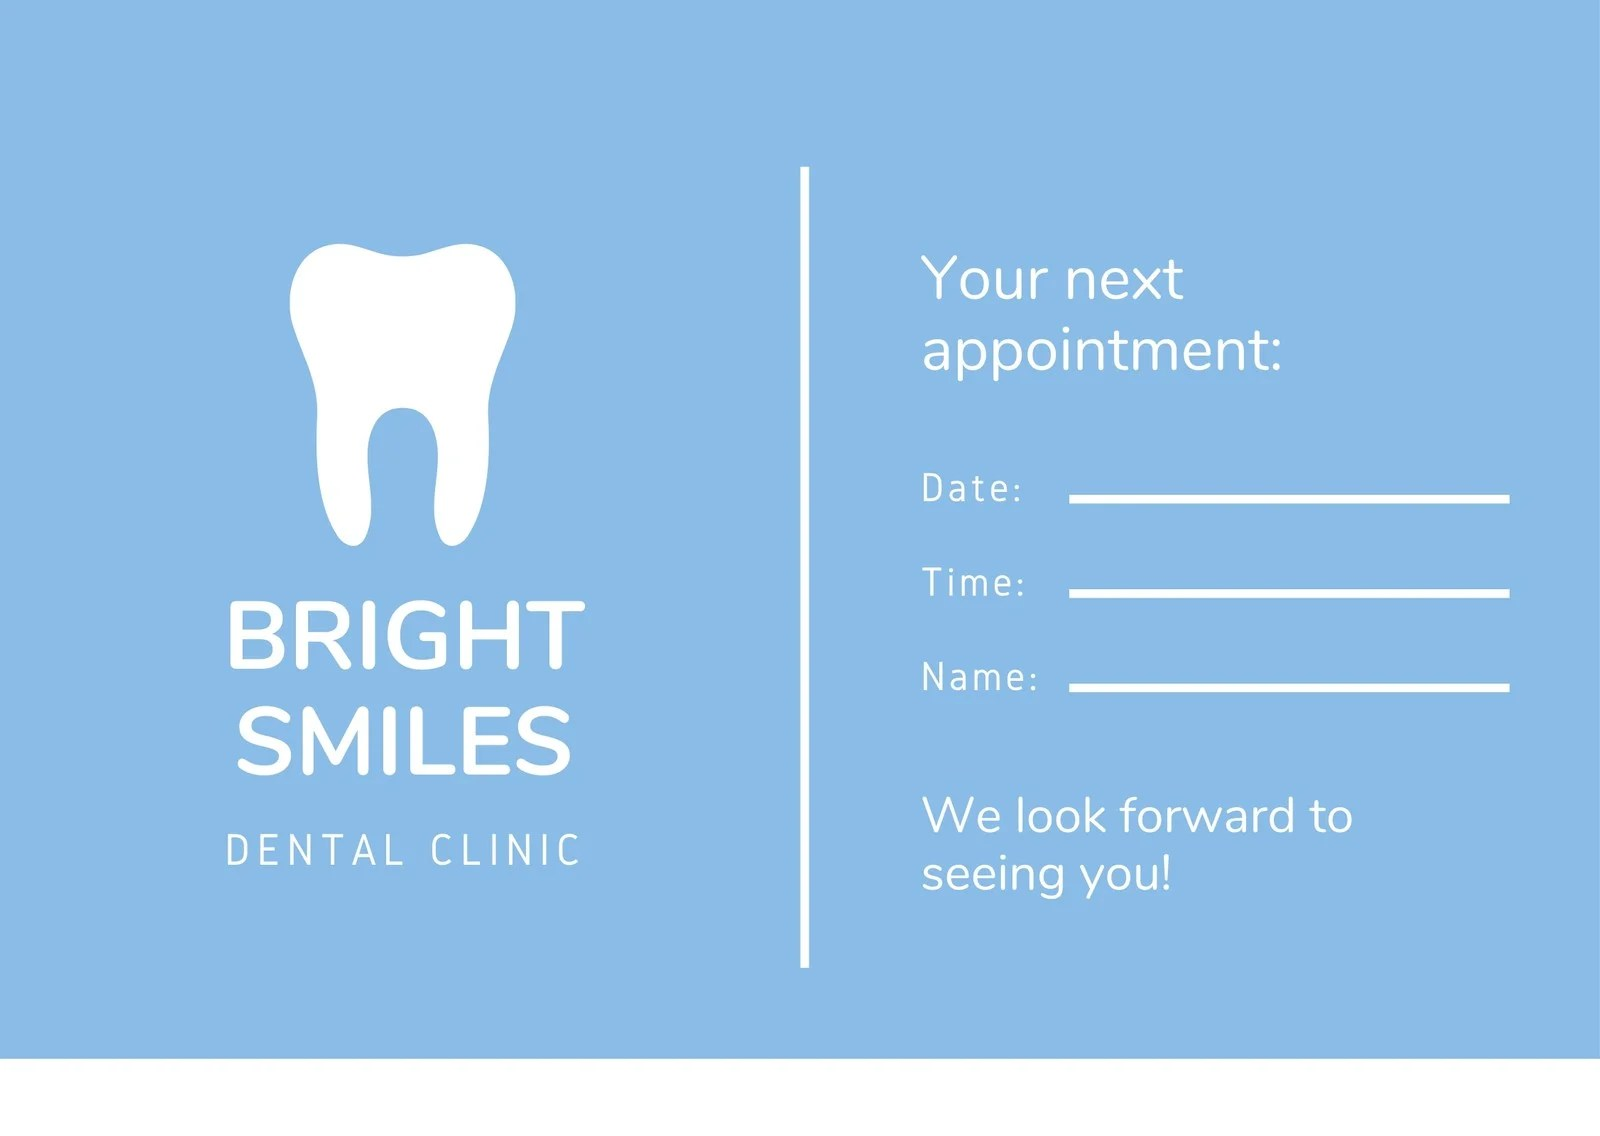 Stay connected with patients with automated dental appointment reminder text messages. Free Printable Customizable Appointment Card Templates Canva